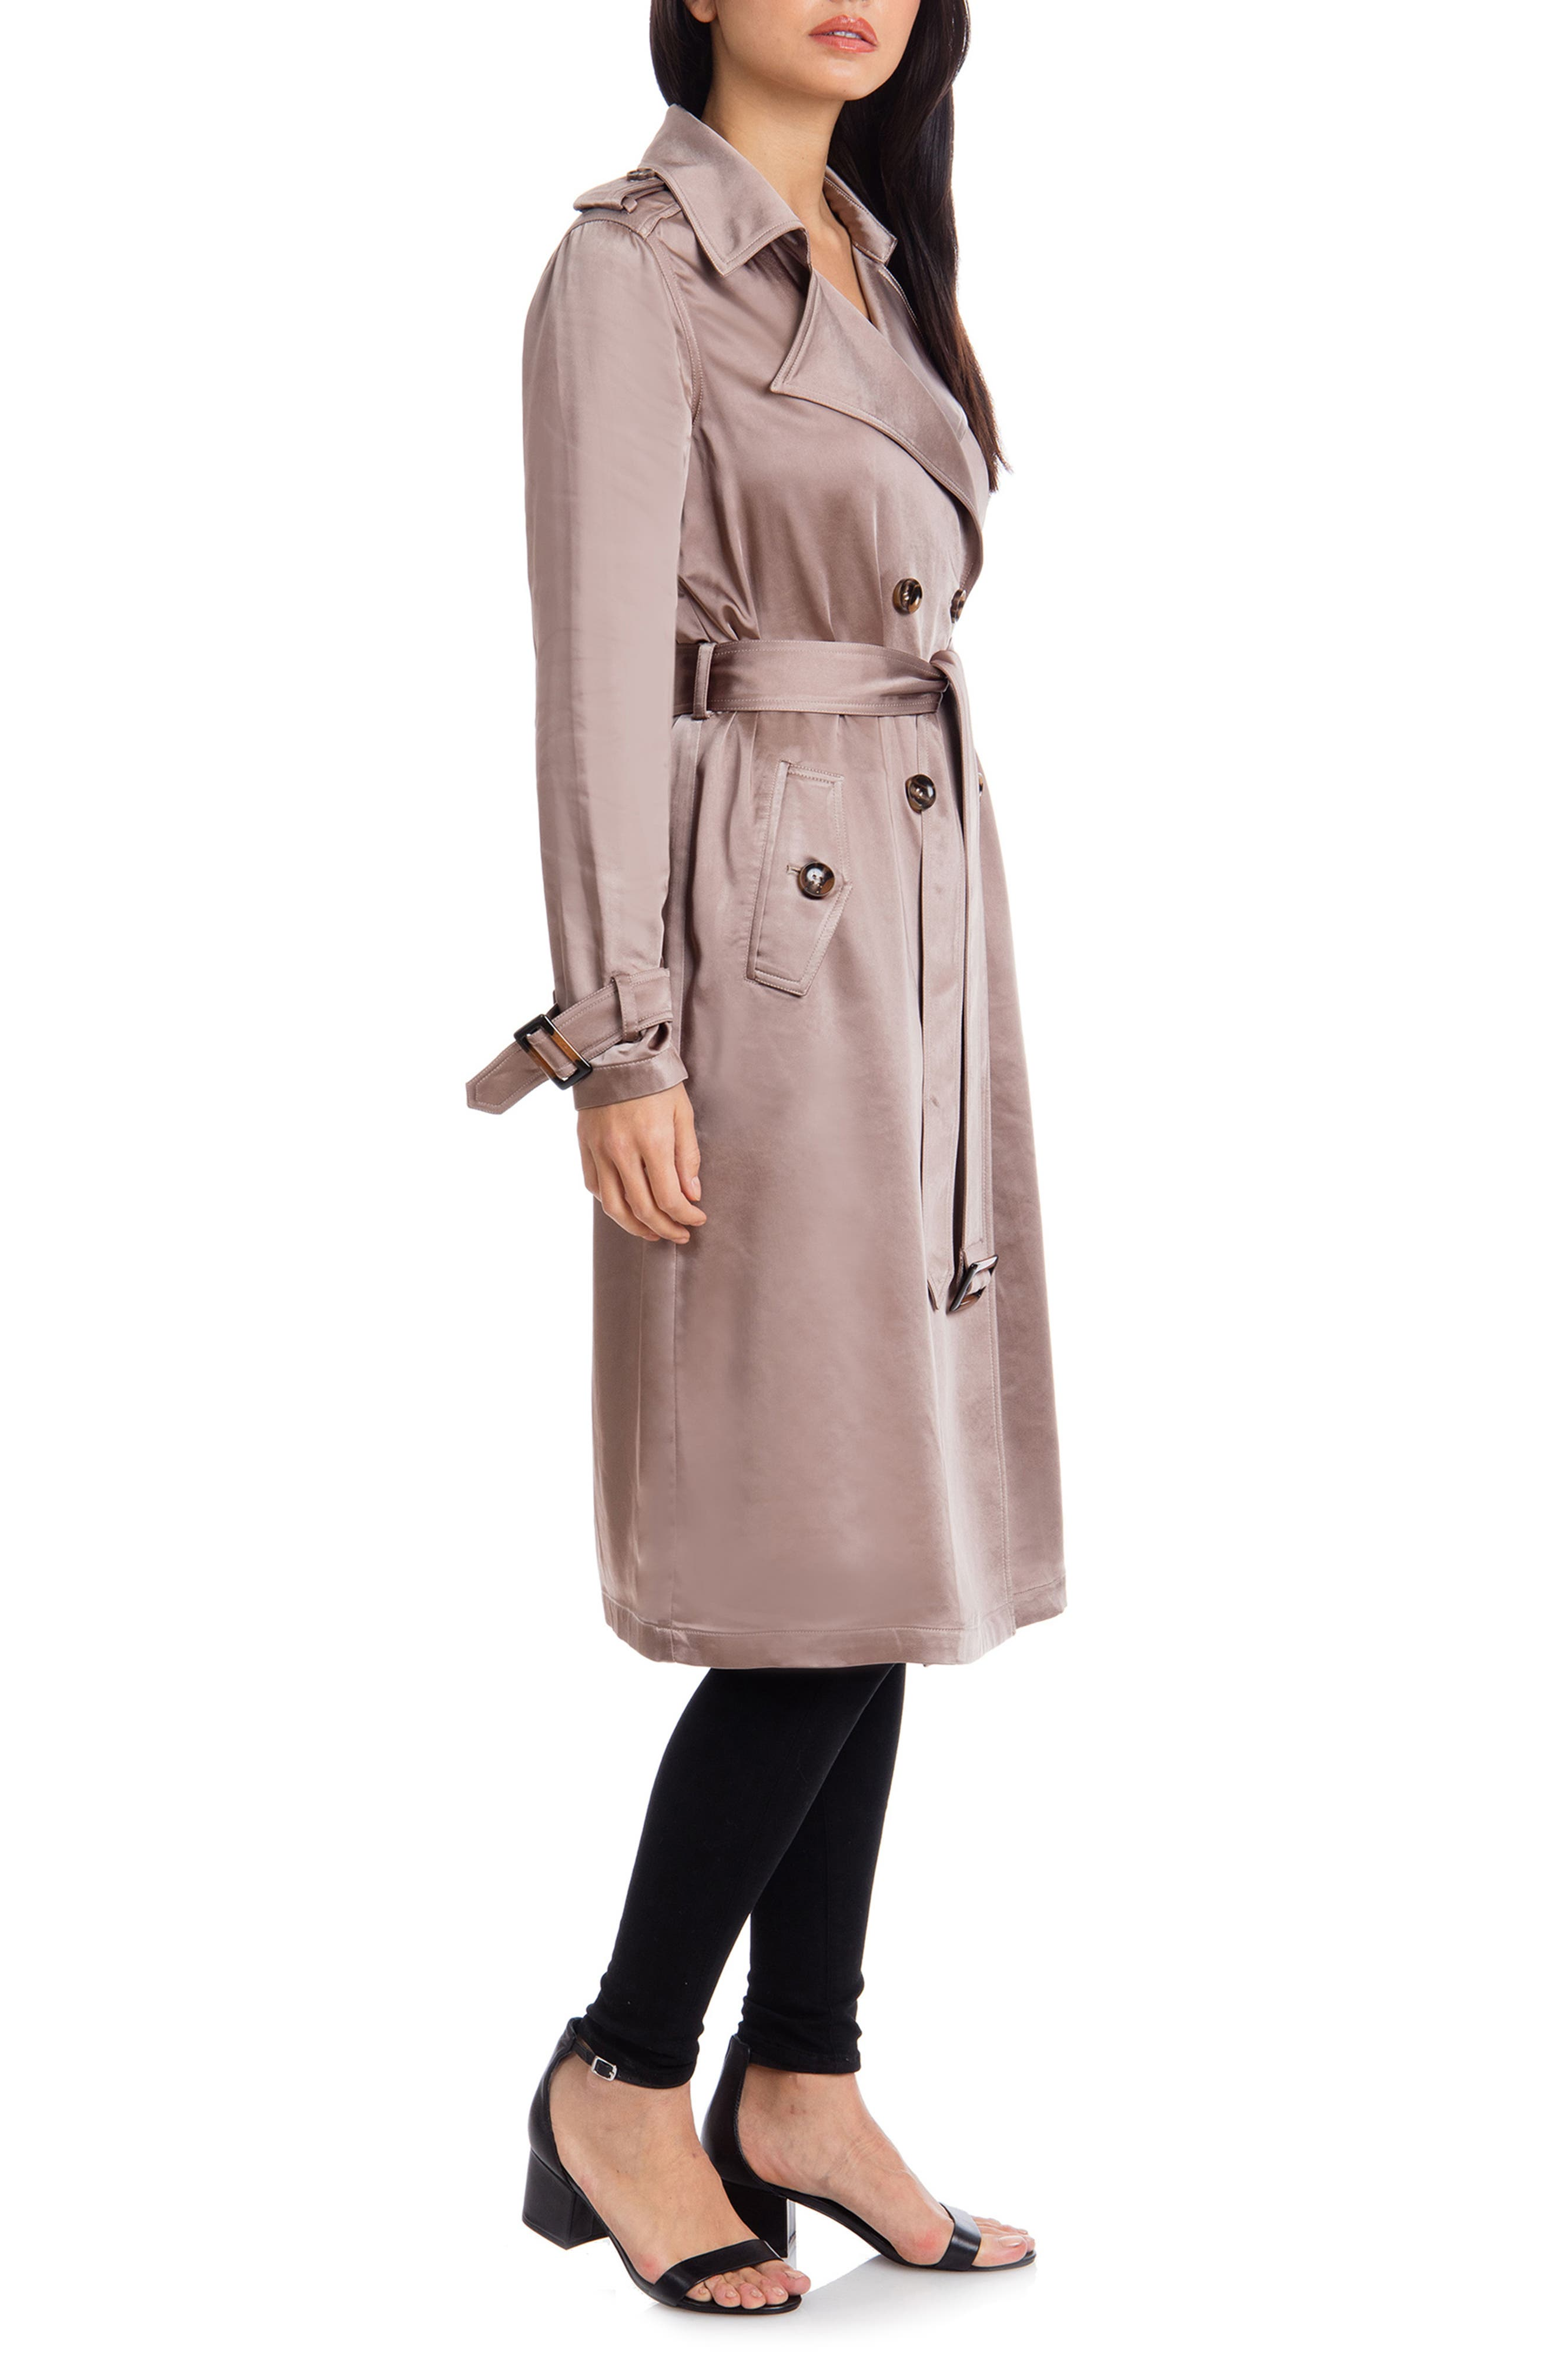 BADGLEY MISCHKA COLLECTION,                             Badgley Mischka Double Breasted Satin Trench Coat,                             Alternate thumbnail 3, color,                             TAUPE